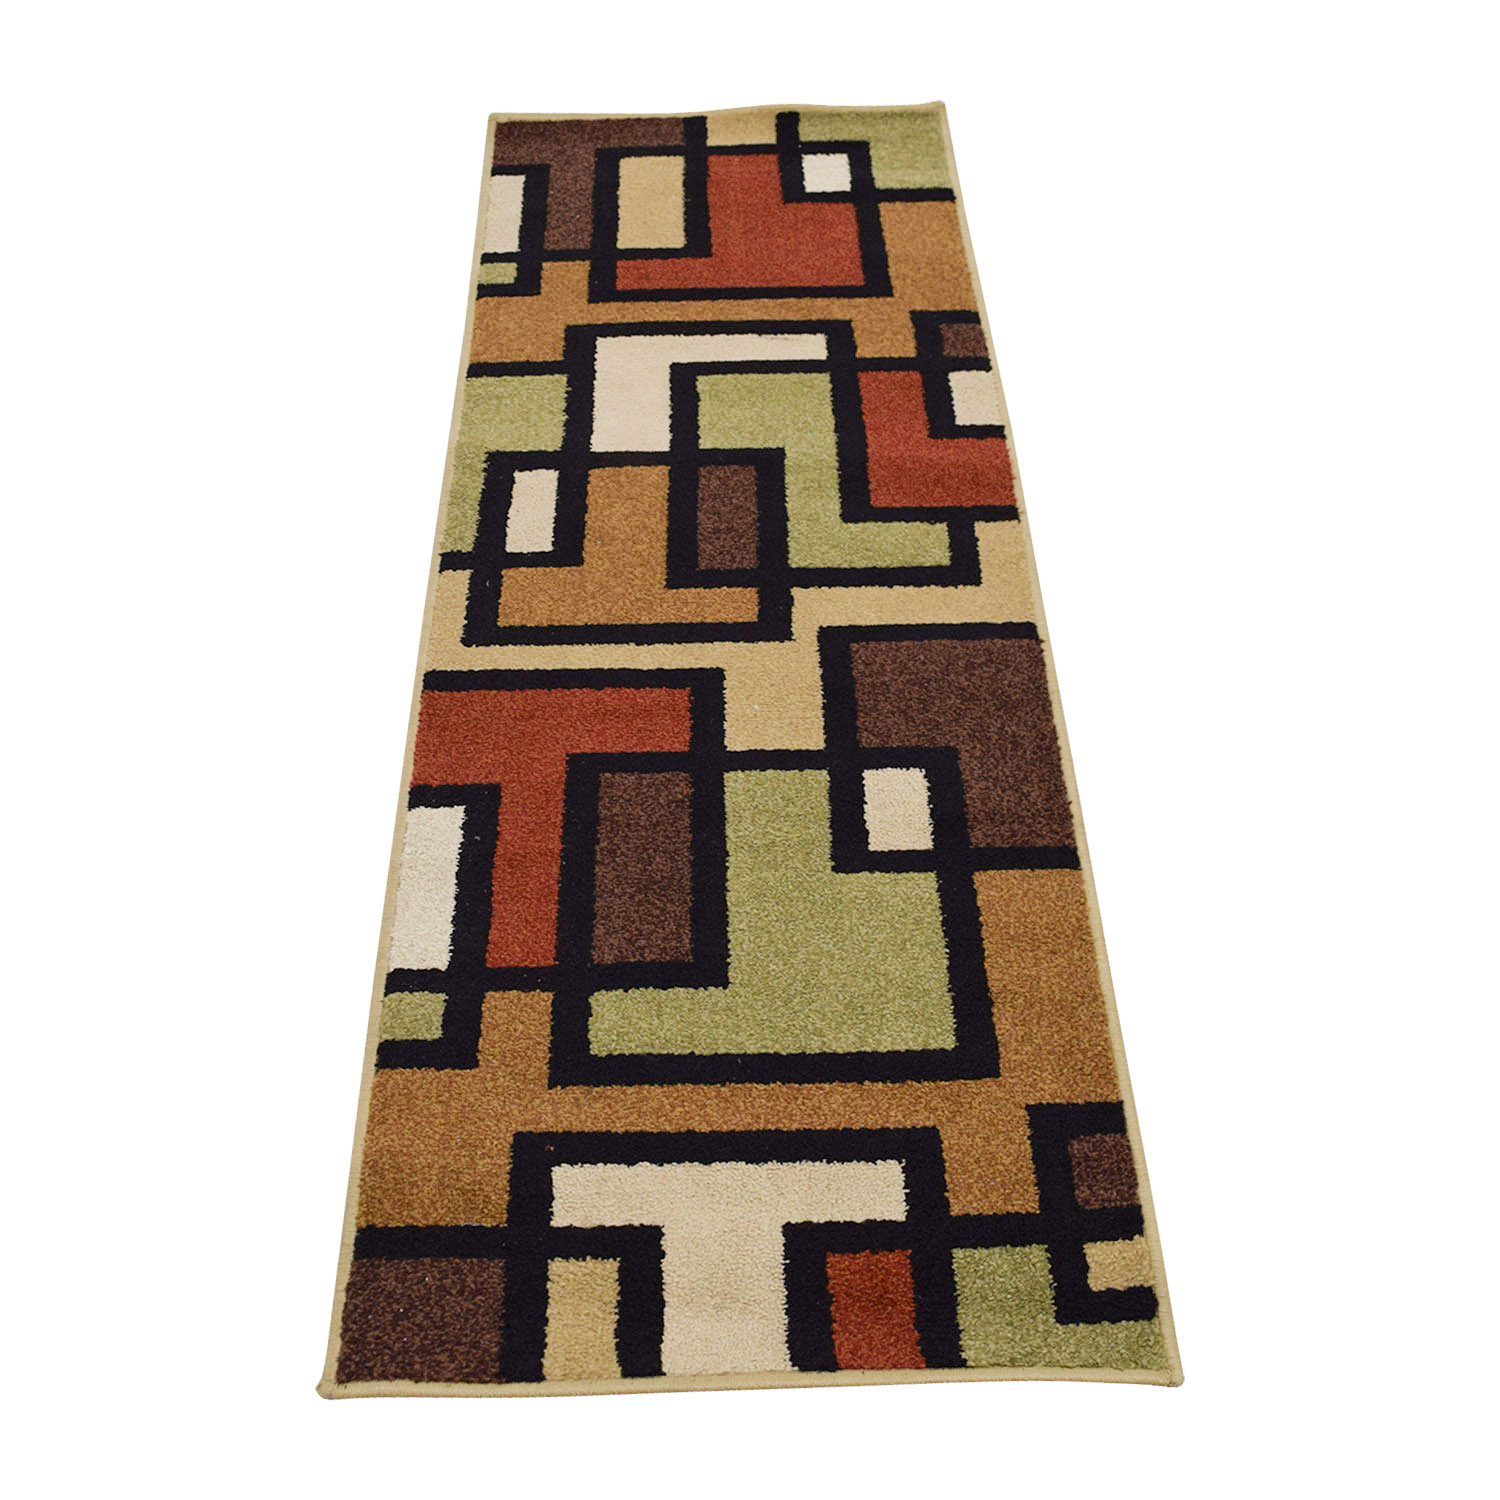 Multi-Colored Runner Rug used